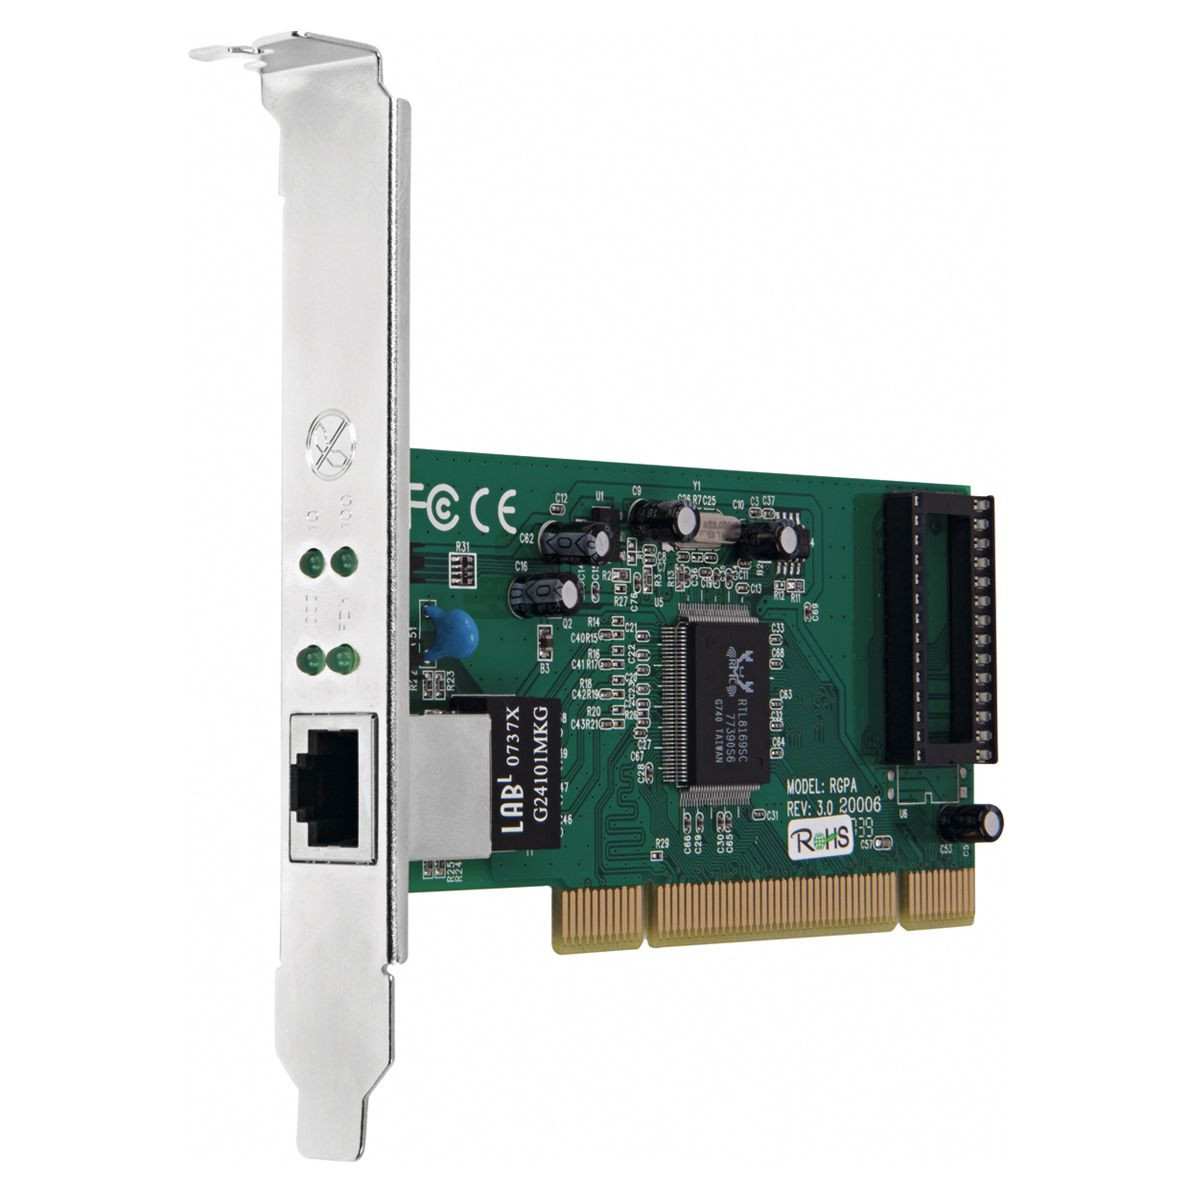 Placa de Rede Intelbras PEG132B Pci Gigabit Ethernet